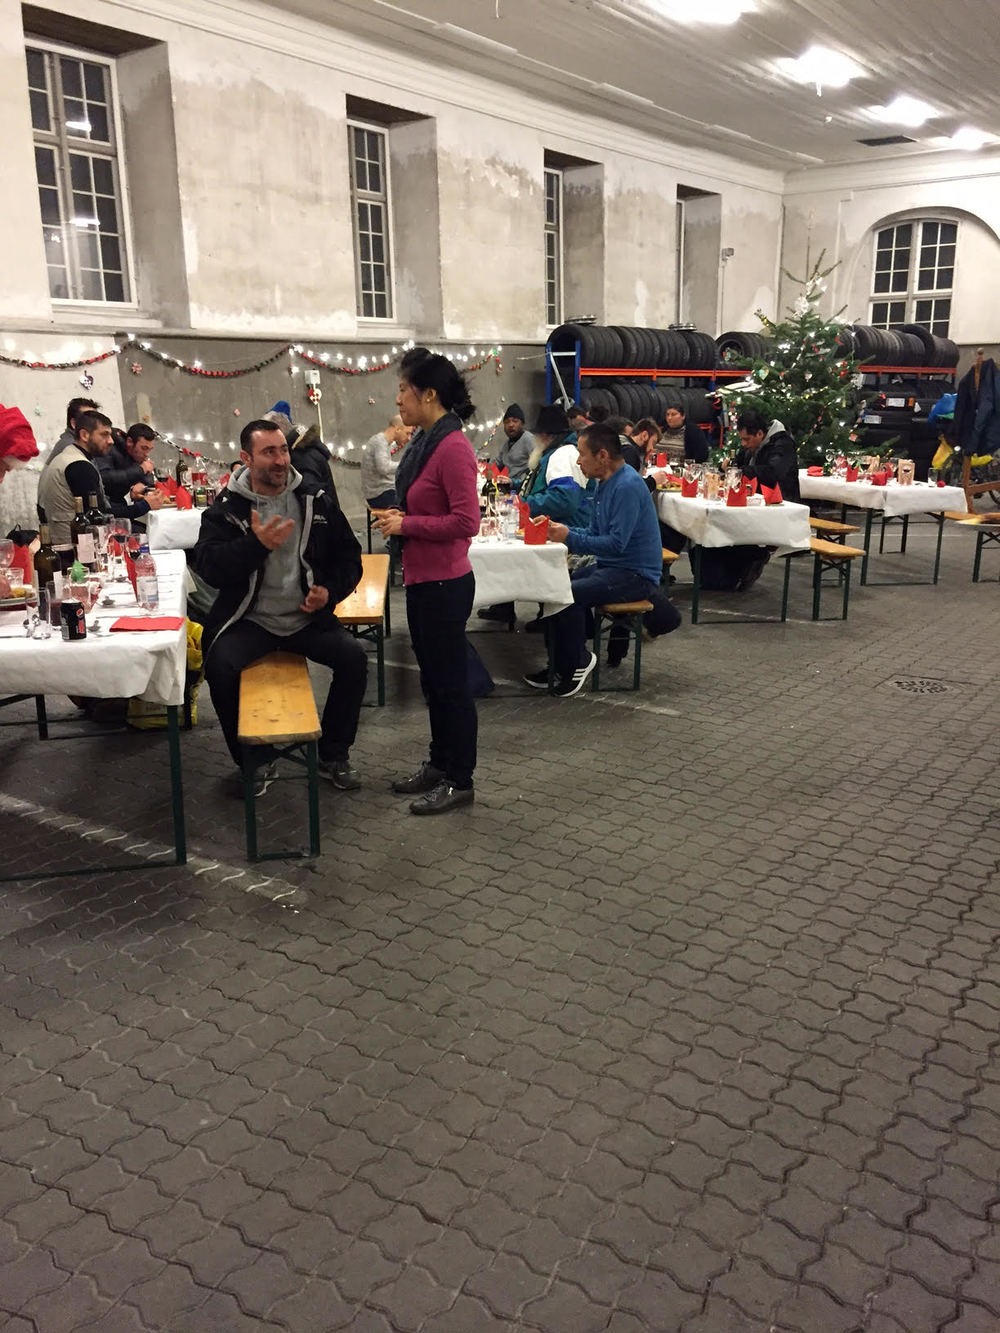 The December 24 Christmas Dinner at Amalienborg Palace, sponsored by Grace Cafe.